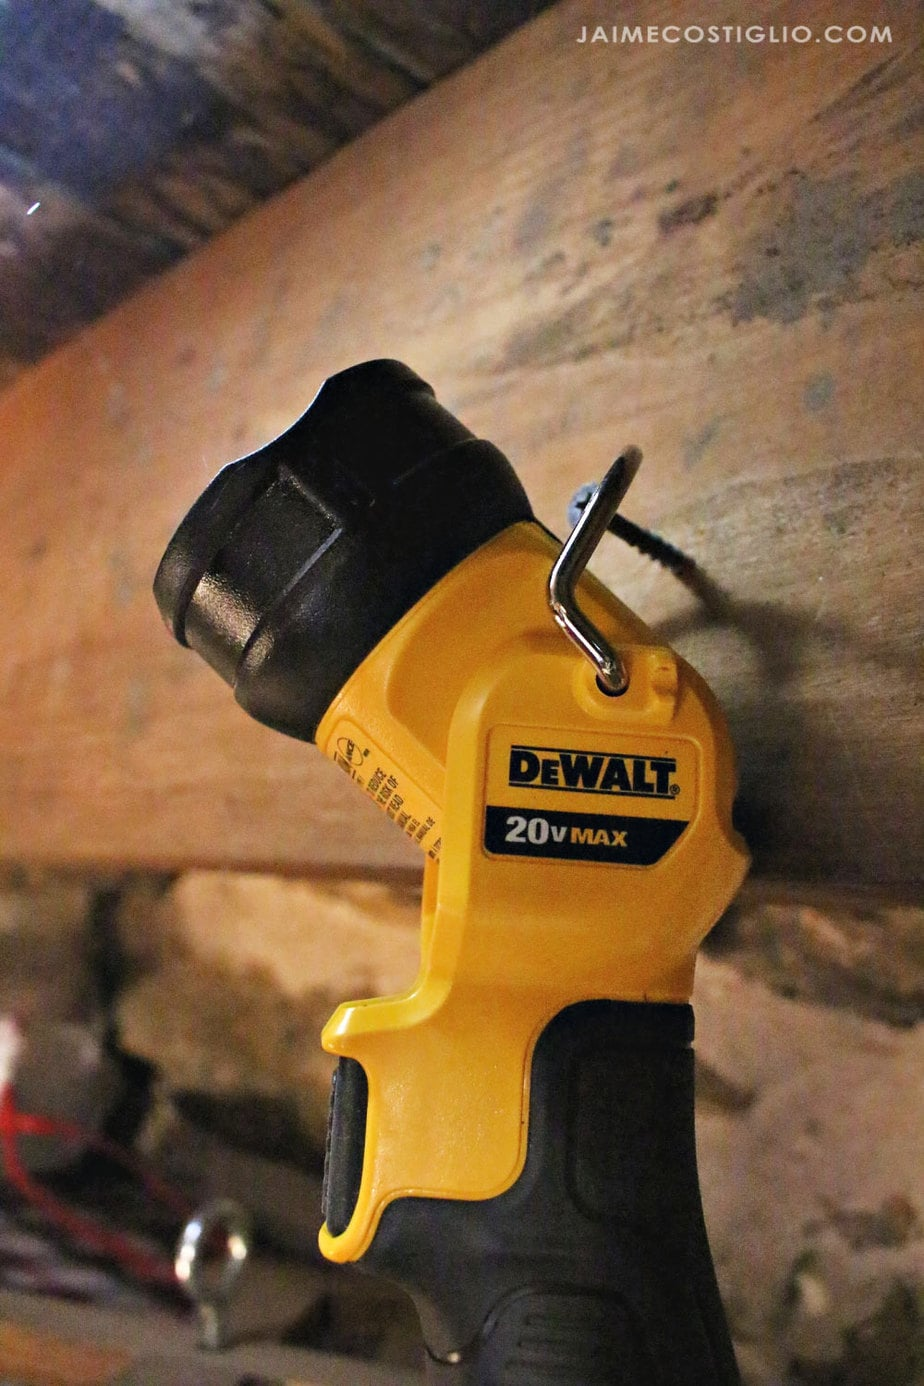 dewalt flashlight hanging